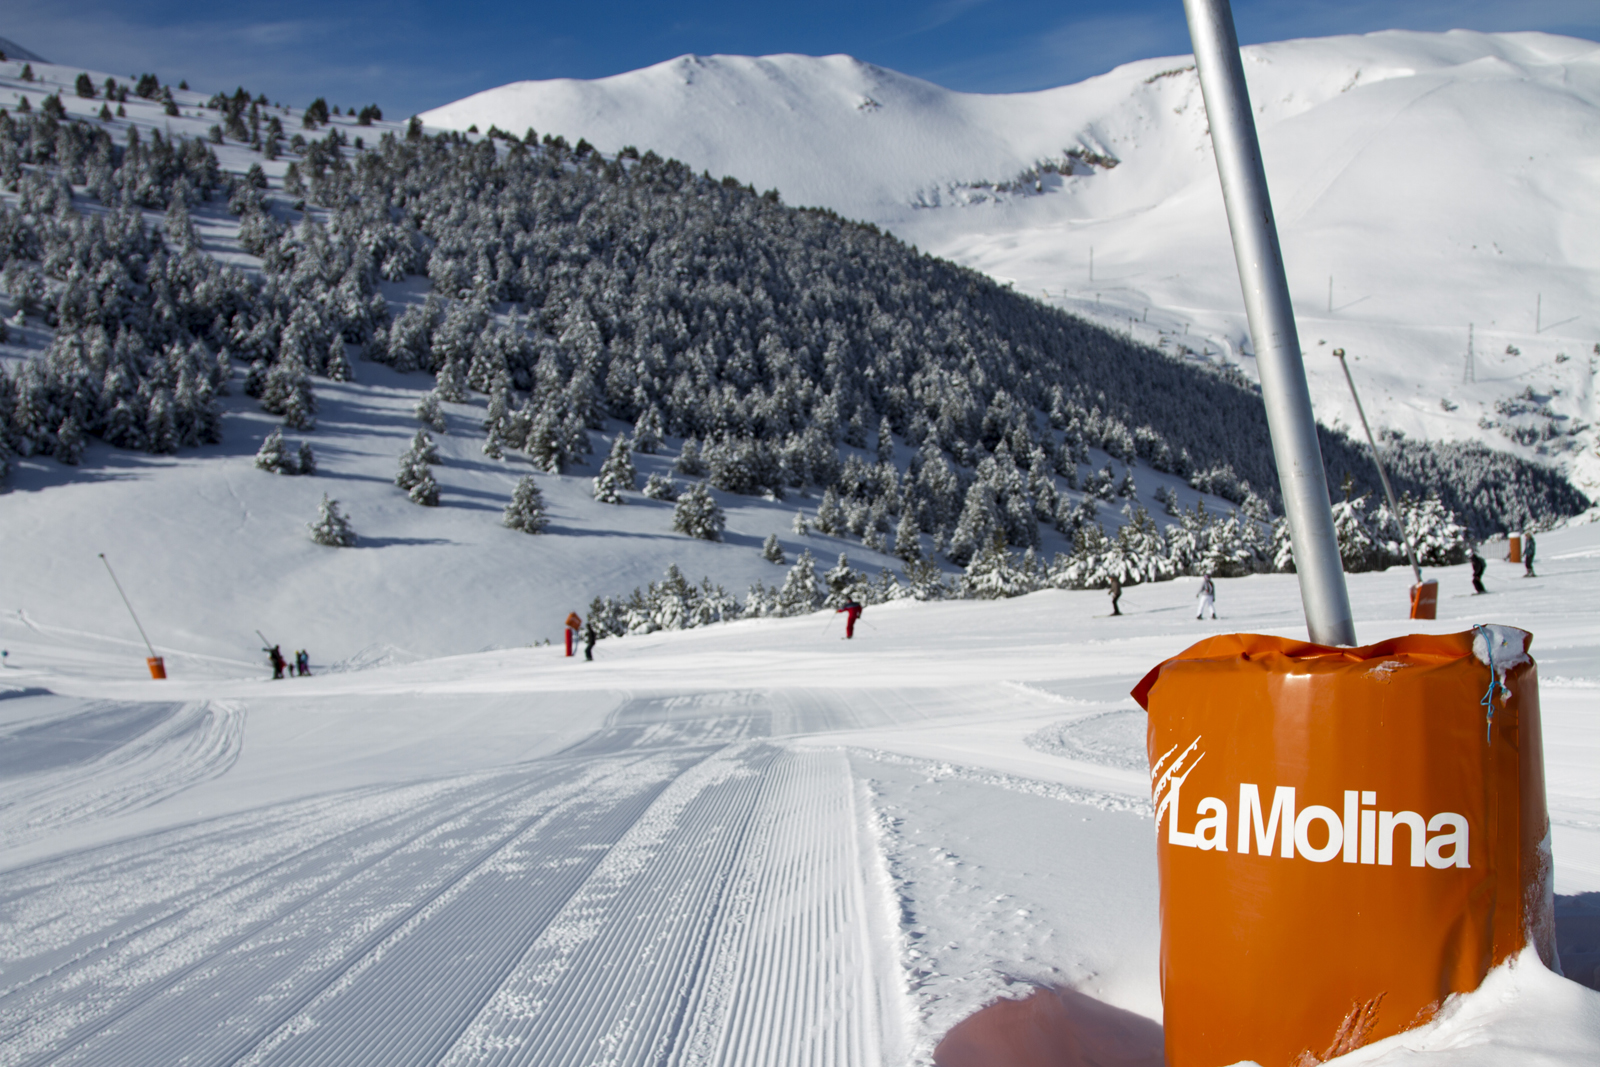 La Molina Season Ski pass - Only Sundays